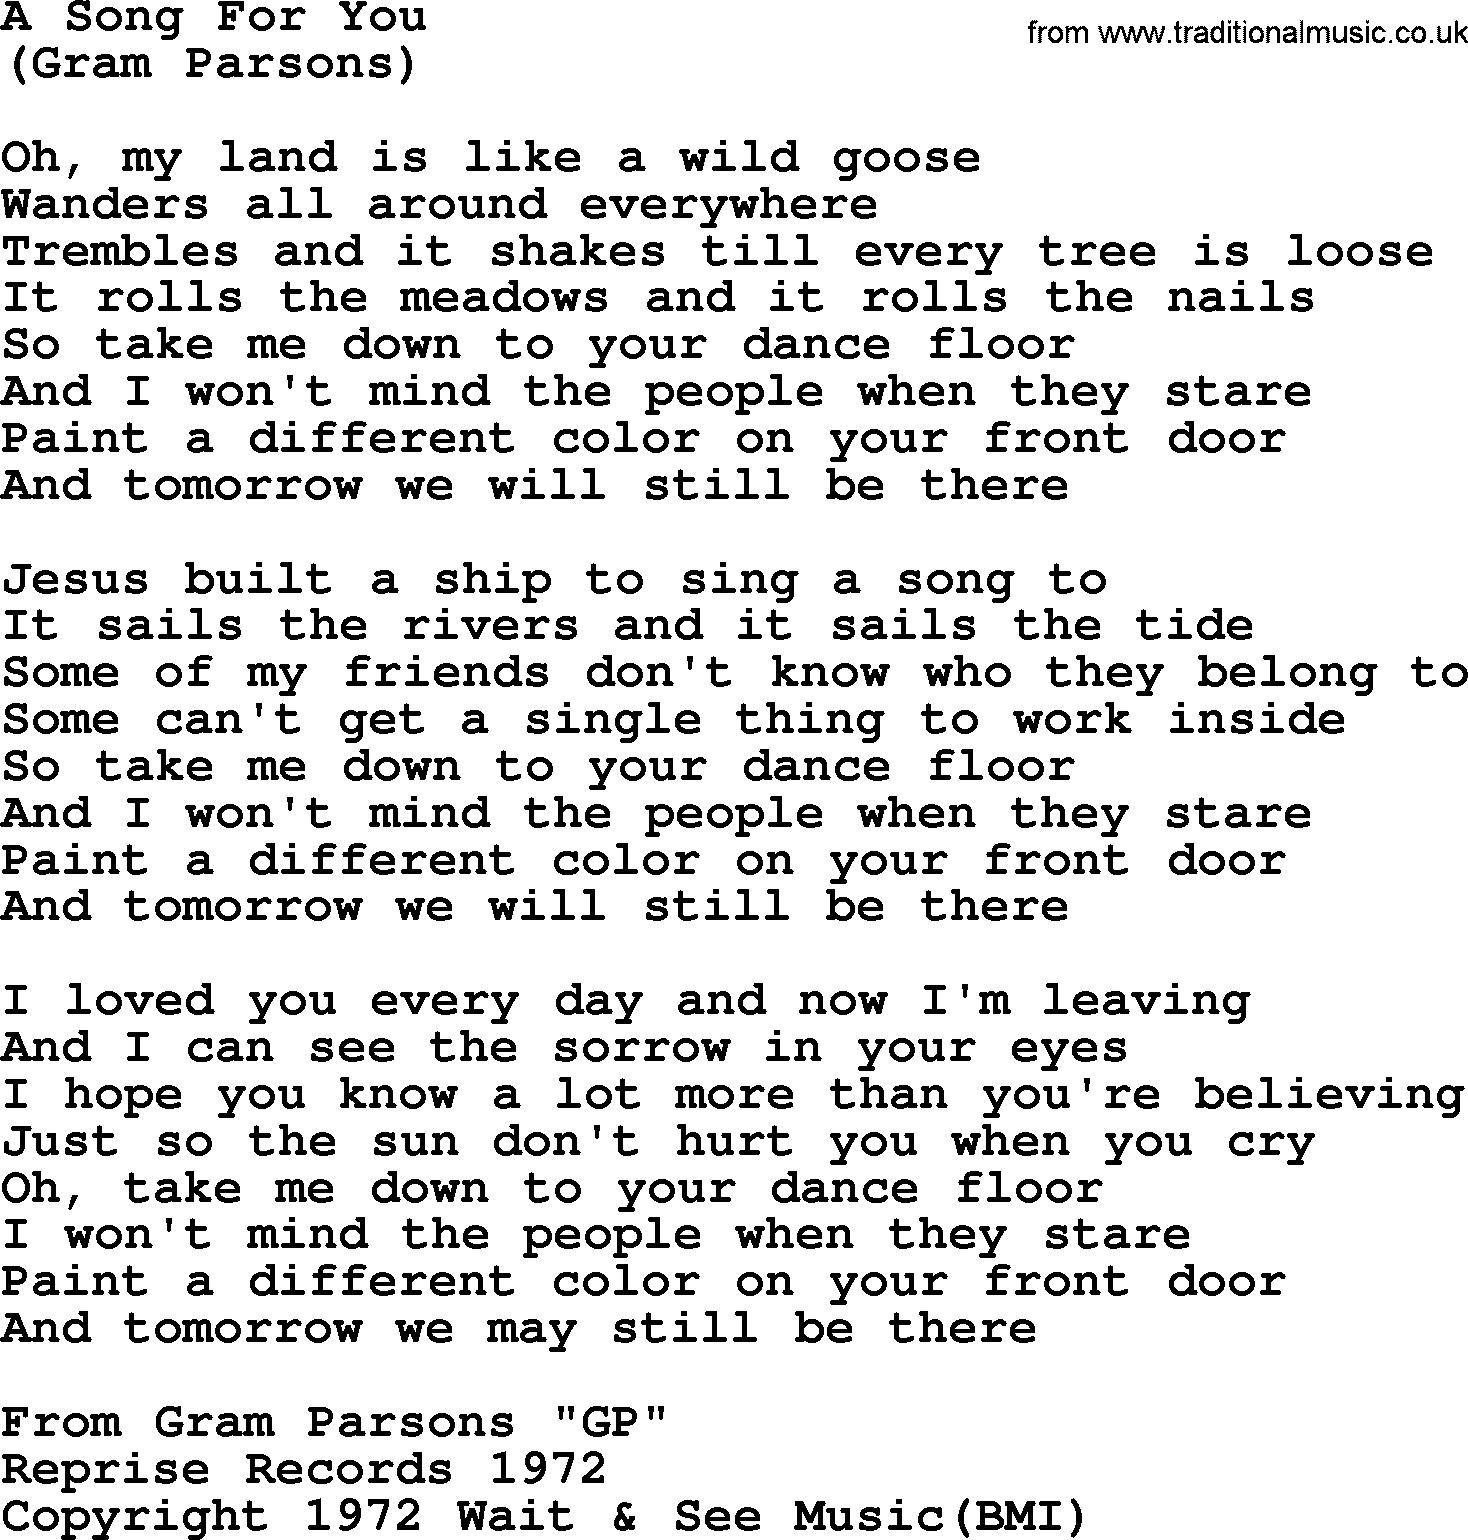 Sing a song for you lyrics